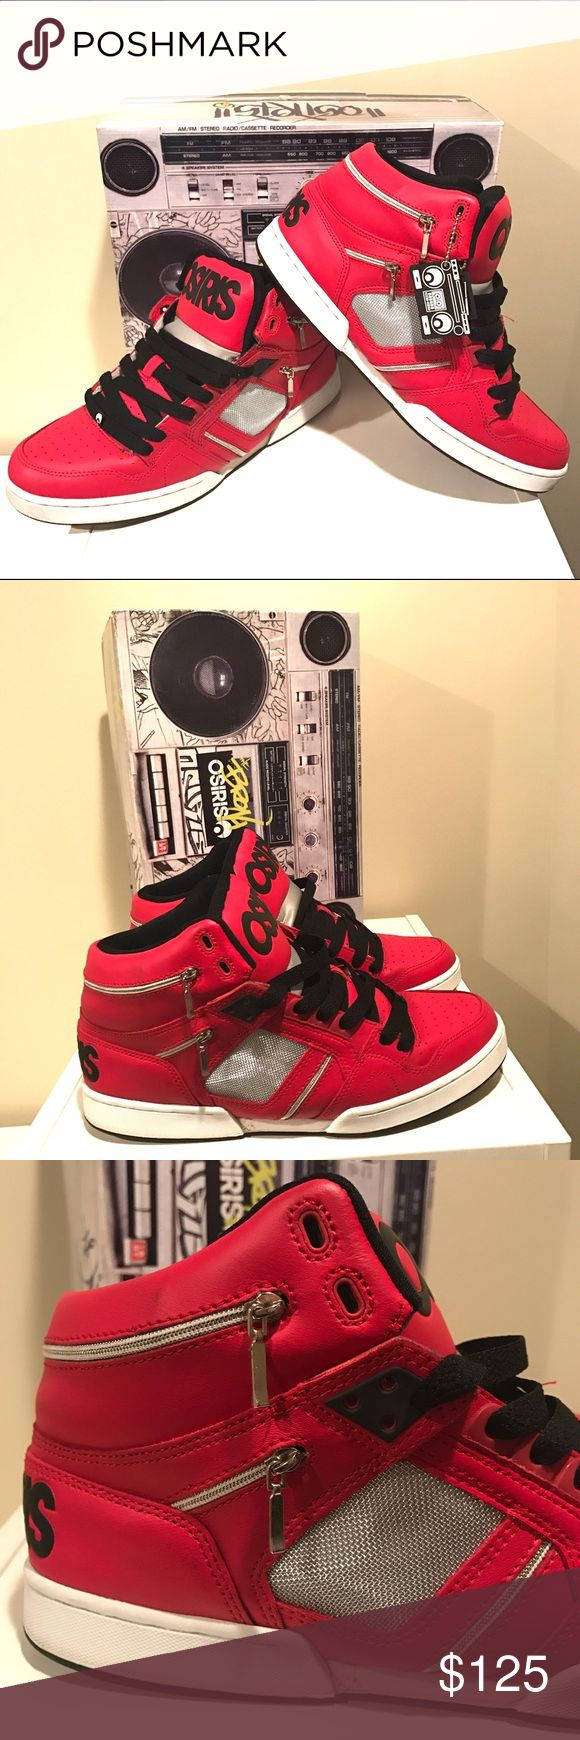 "OSIRIS Bronx ""Beat It"" Michael Jackson Shoe These  Bronx ""Beat It"" shoes are a must have addition to any Osiris collection!  They feature zipper details and a silver mesh side panel, inspired by Michael Jacksons Beat It video.  Come in original box. EUC. Very Rare. No Trades. Osiris Shoes Sneakers"